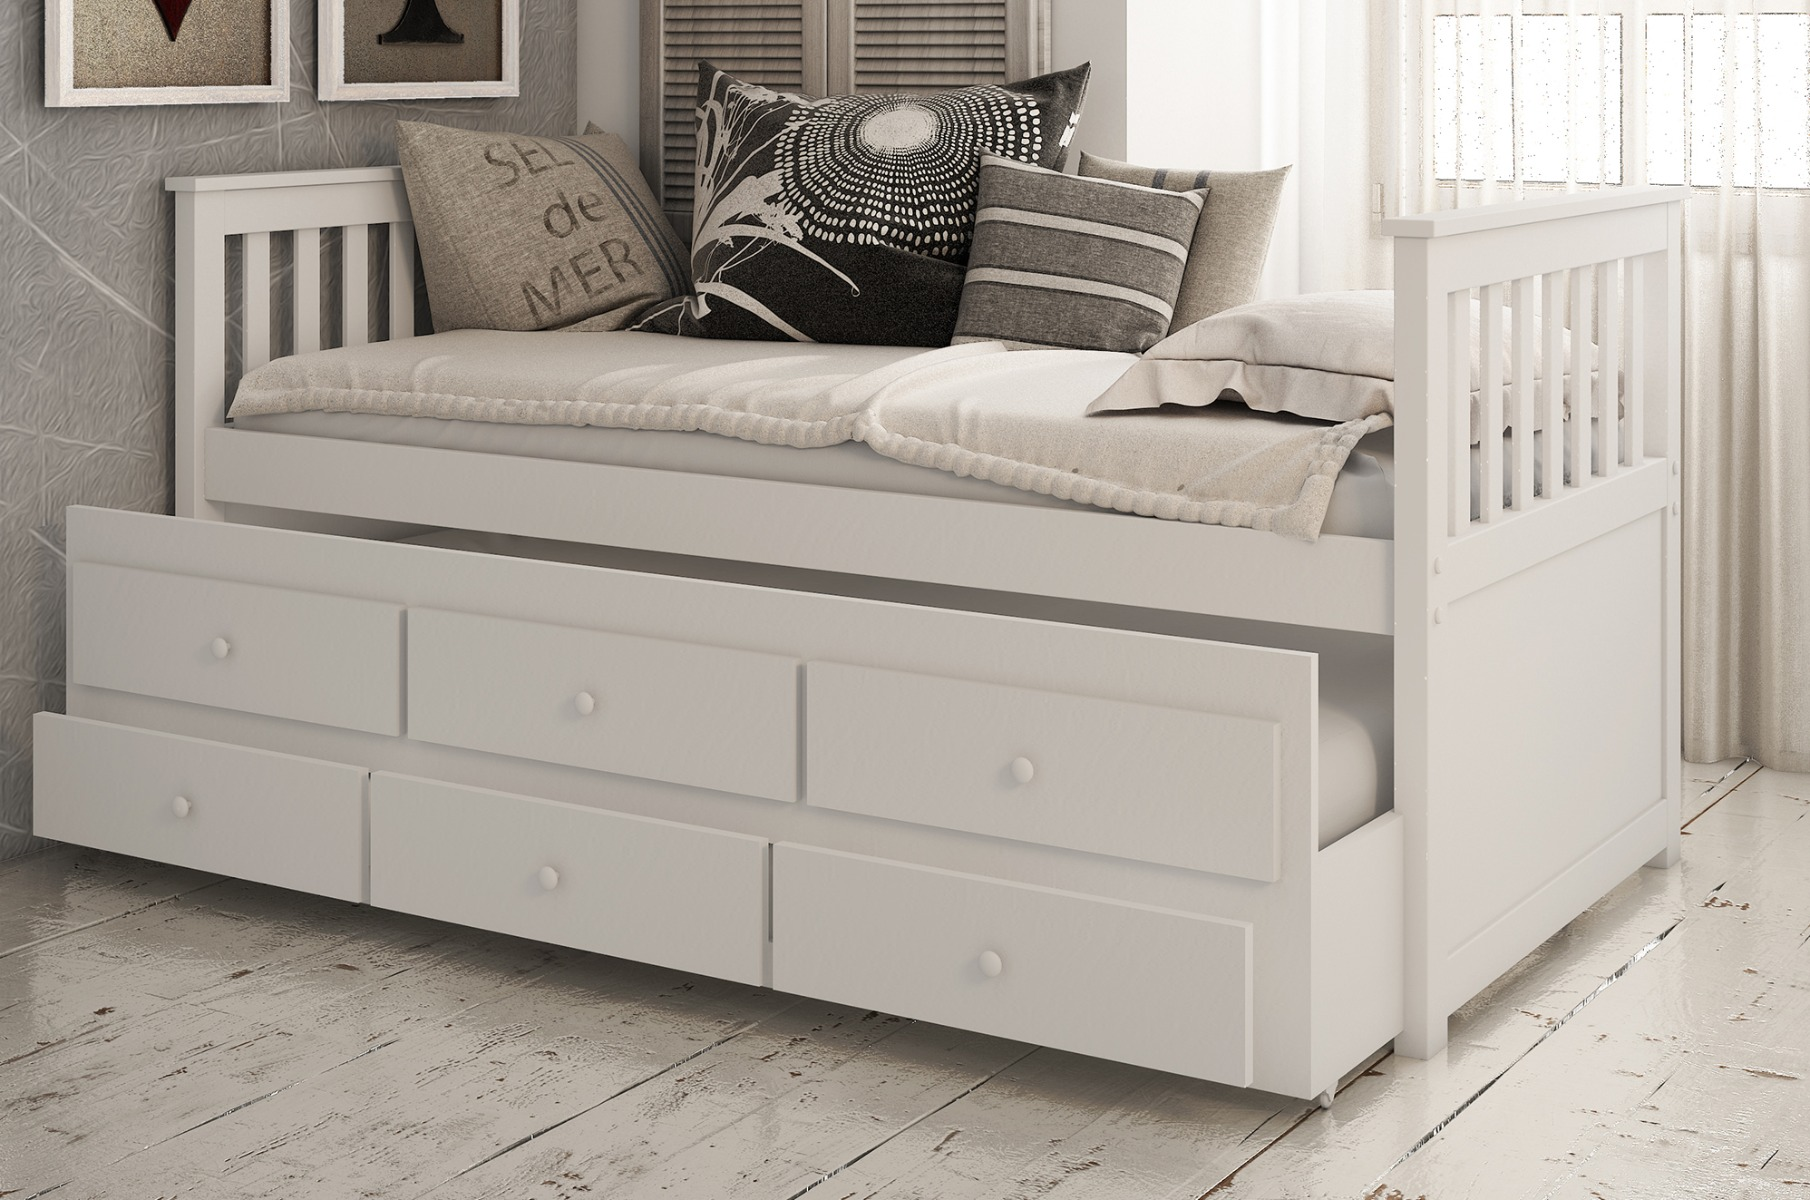 Flos 3ft Single White Wooden Day Bed